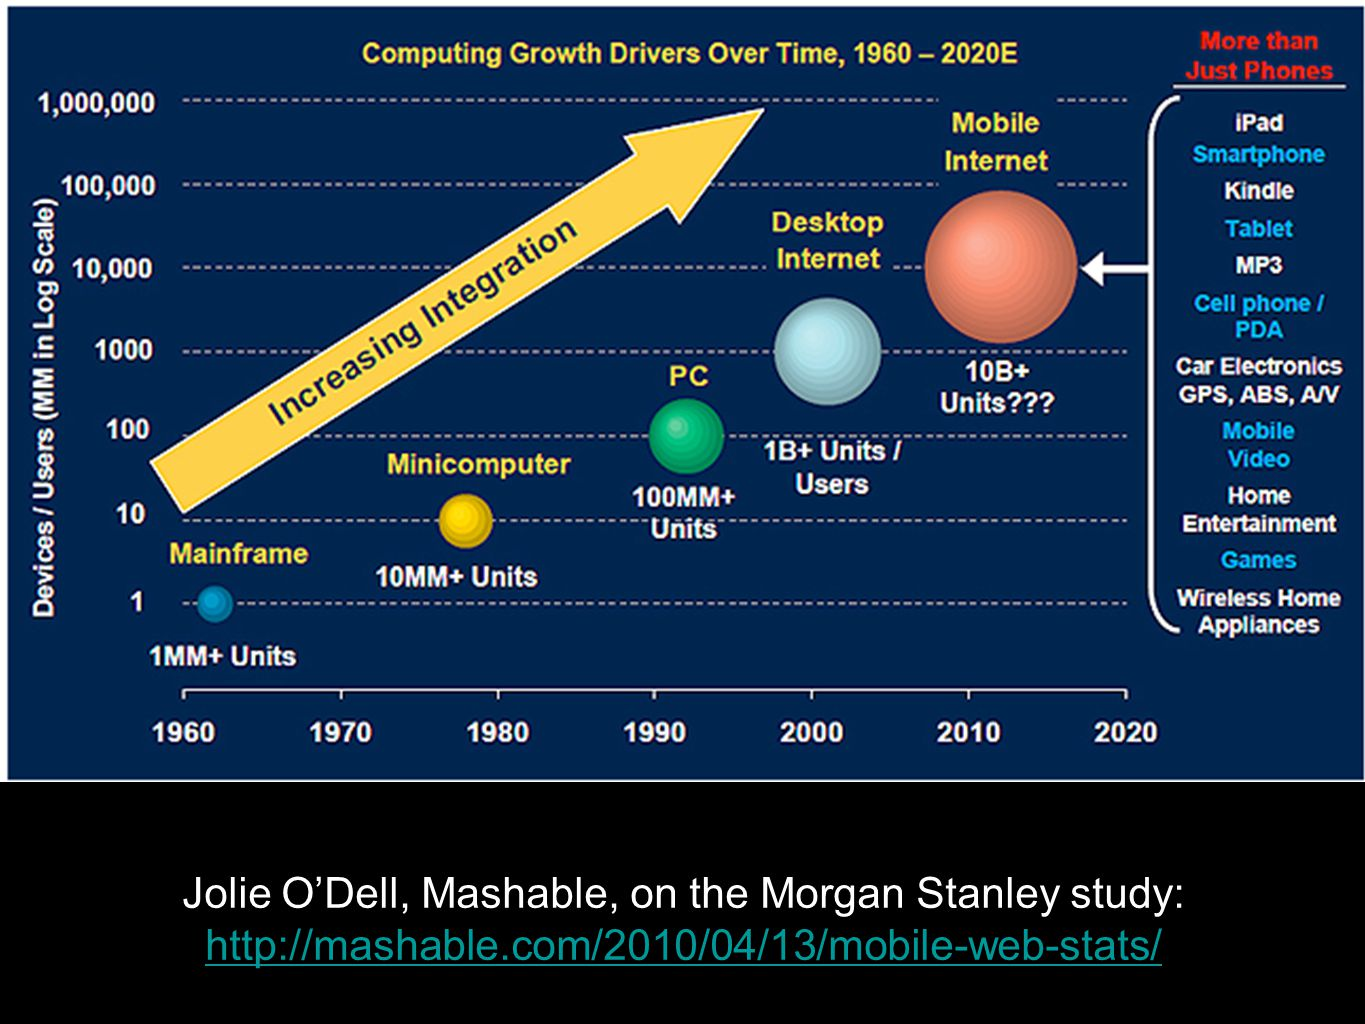 Jolie ODell, Mashable, on the Morgan Stanley study: http://mashable.com/2010/04/13/mobile-web-stats/